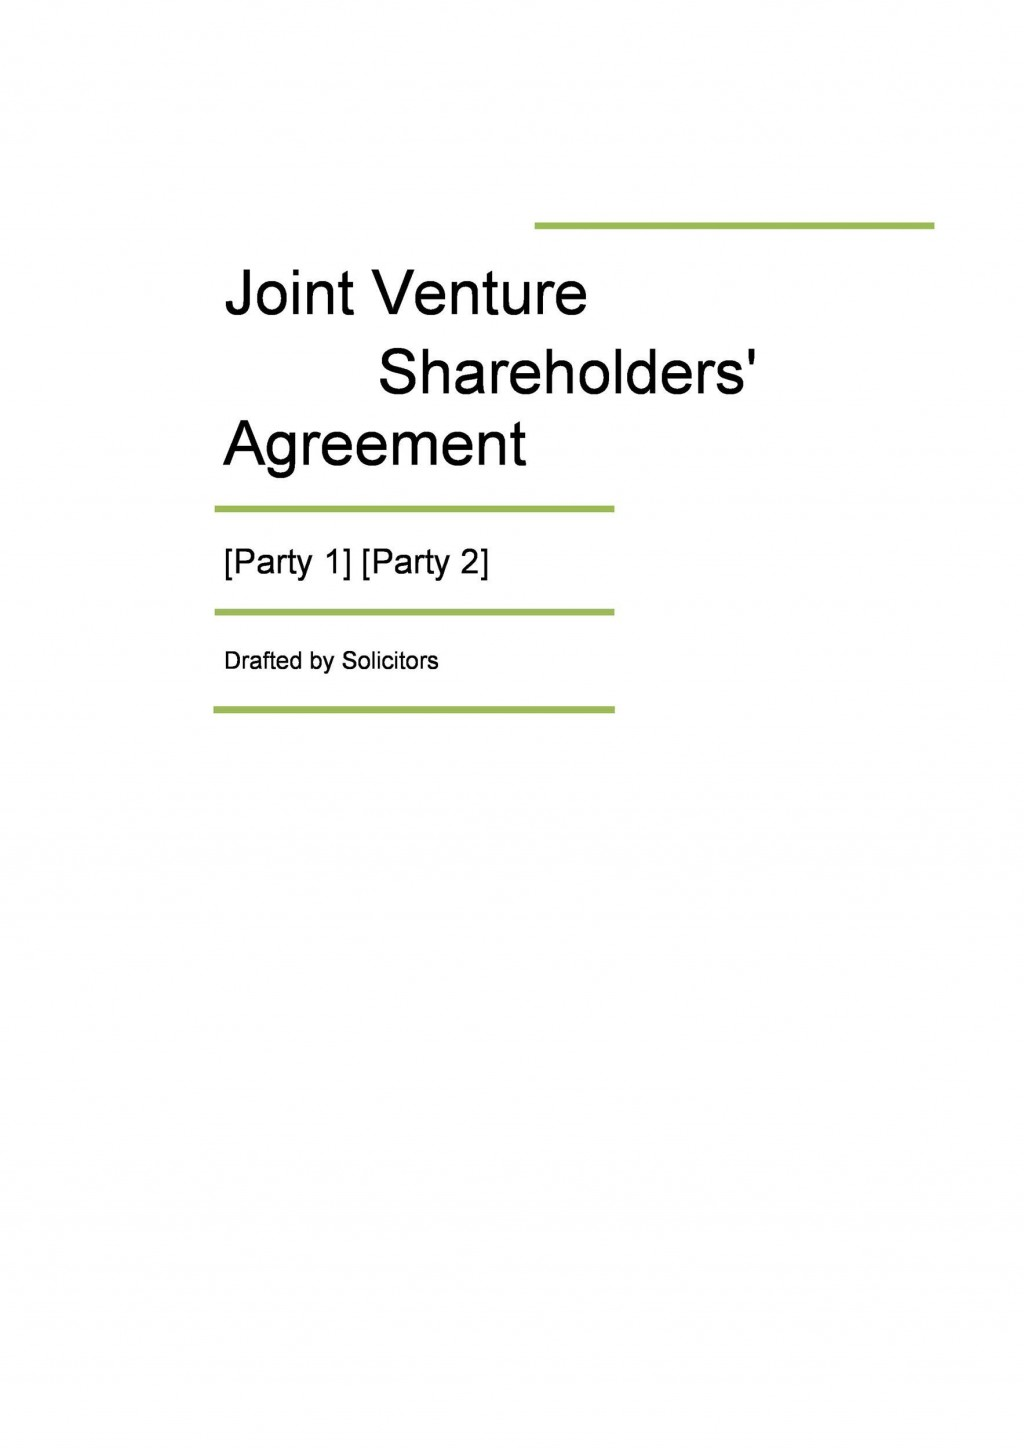 002 Frightening Free Simple Joint Venture Agreement Template High Definition Large